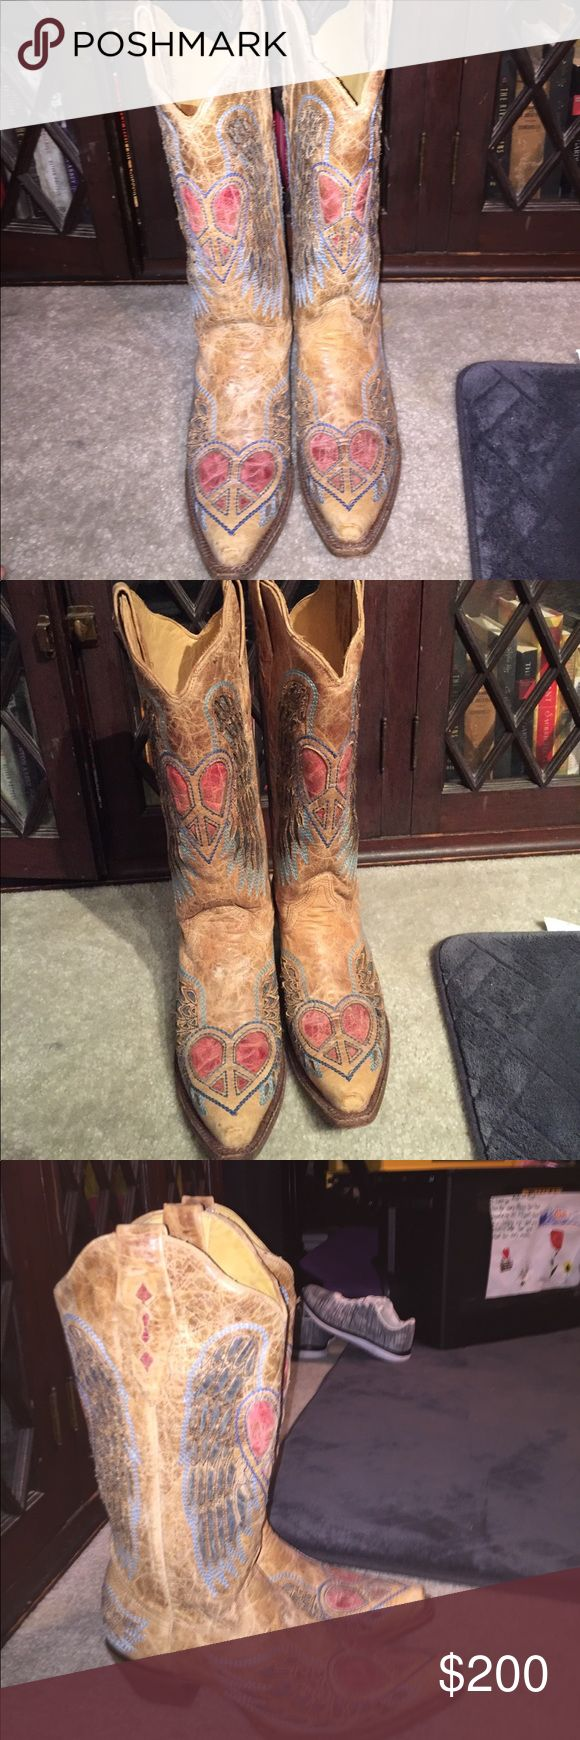 Corral Vintage Peace heart cowboy boots 8.5 women's Corral Boots almost new. Got for my 40th birthday. Love them. Time to move on. Corral Vintage Shoes Heeled Boots